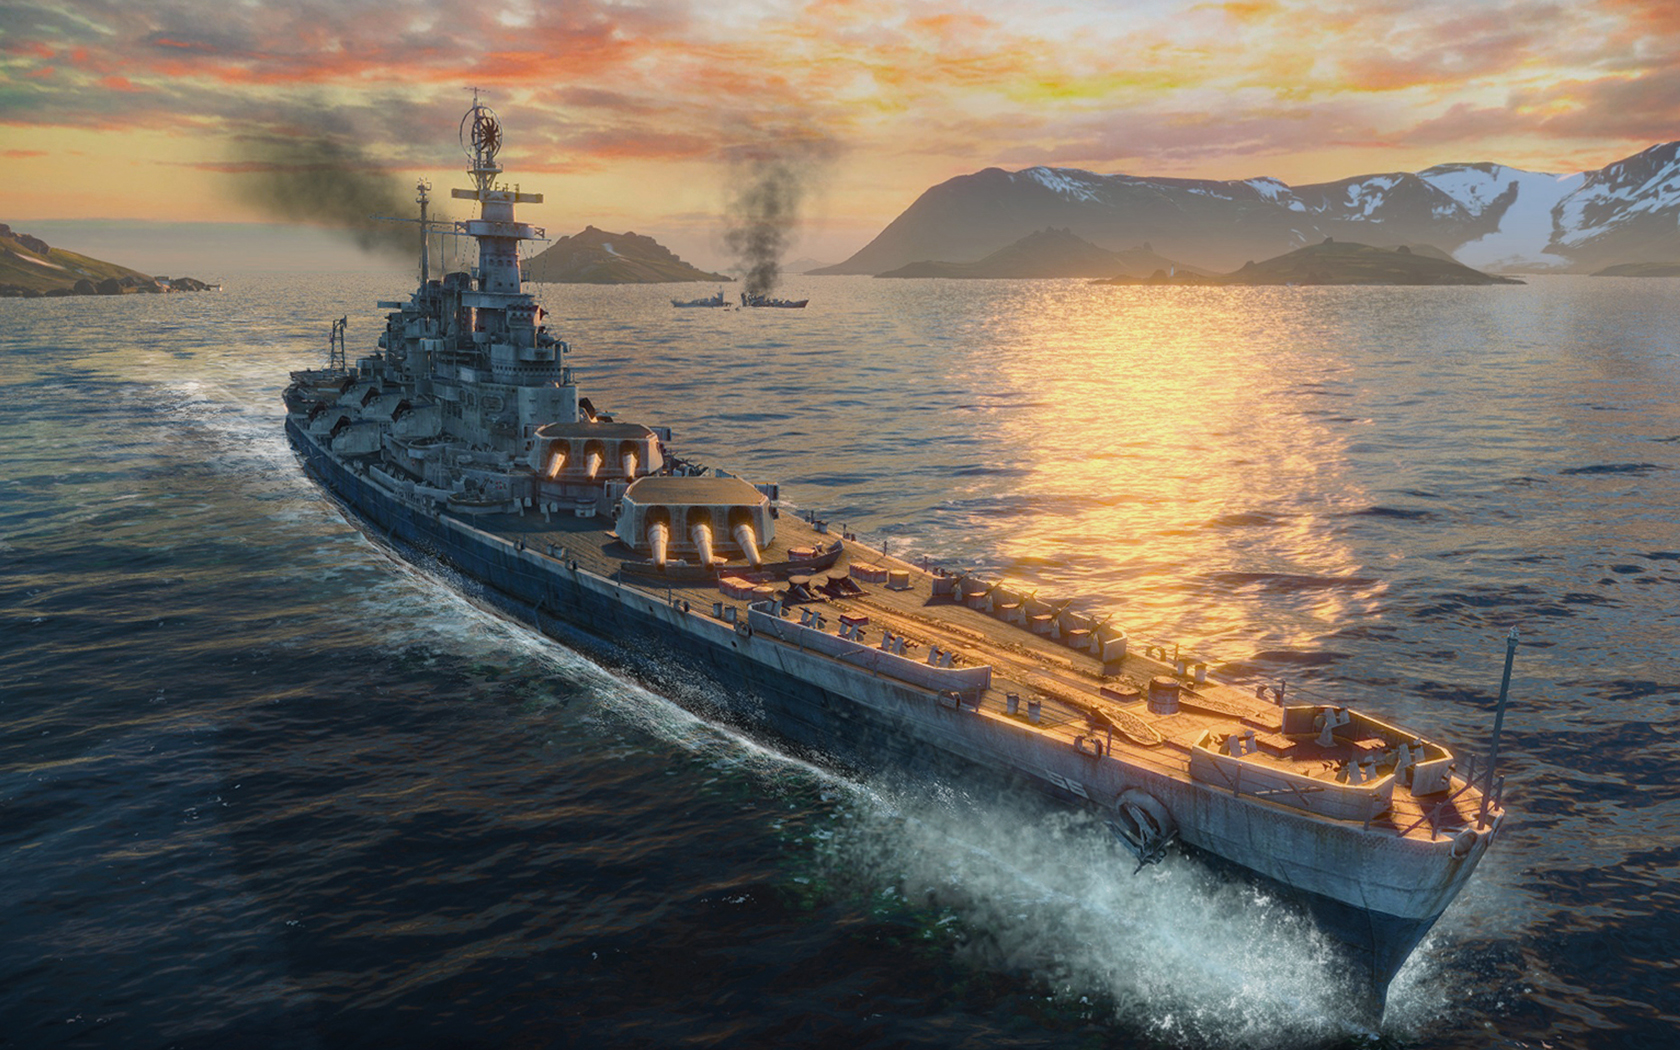 wows_screens_vessels_no_logo_gk_2014_image_2